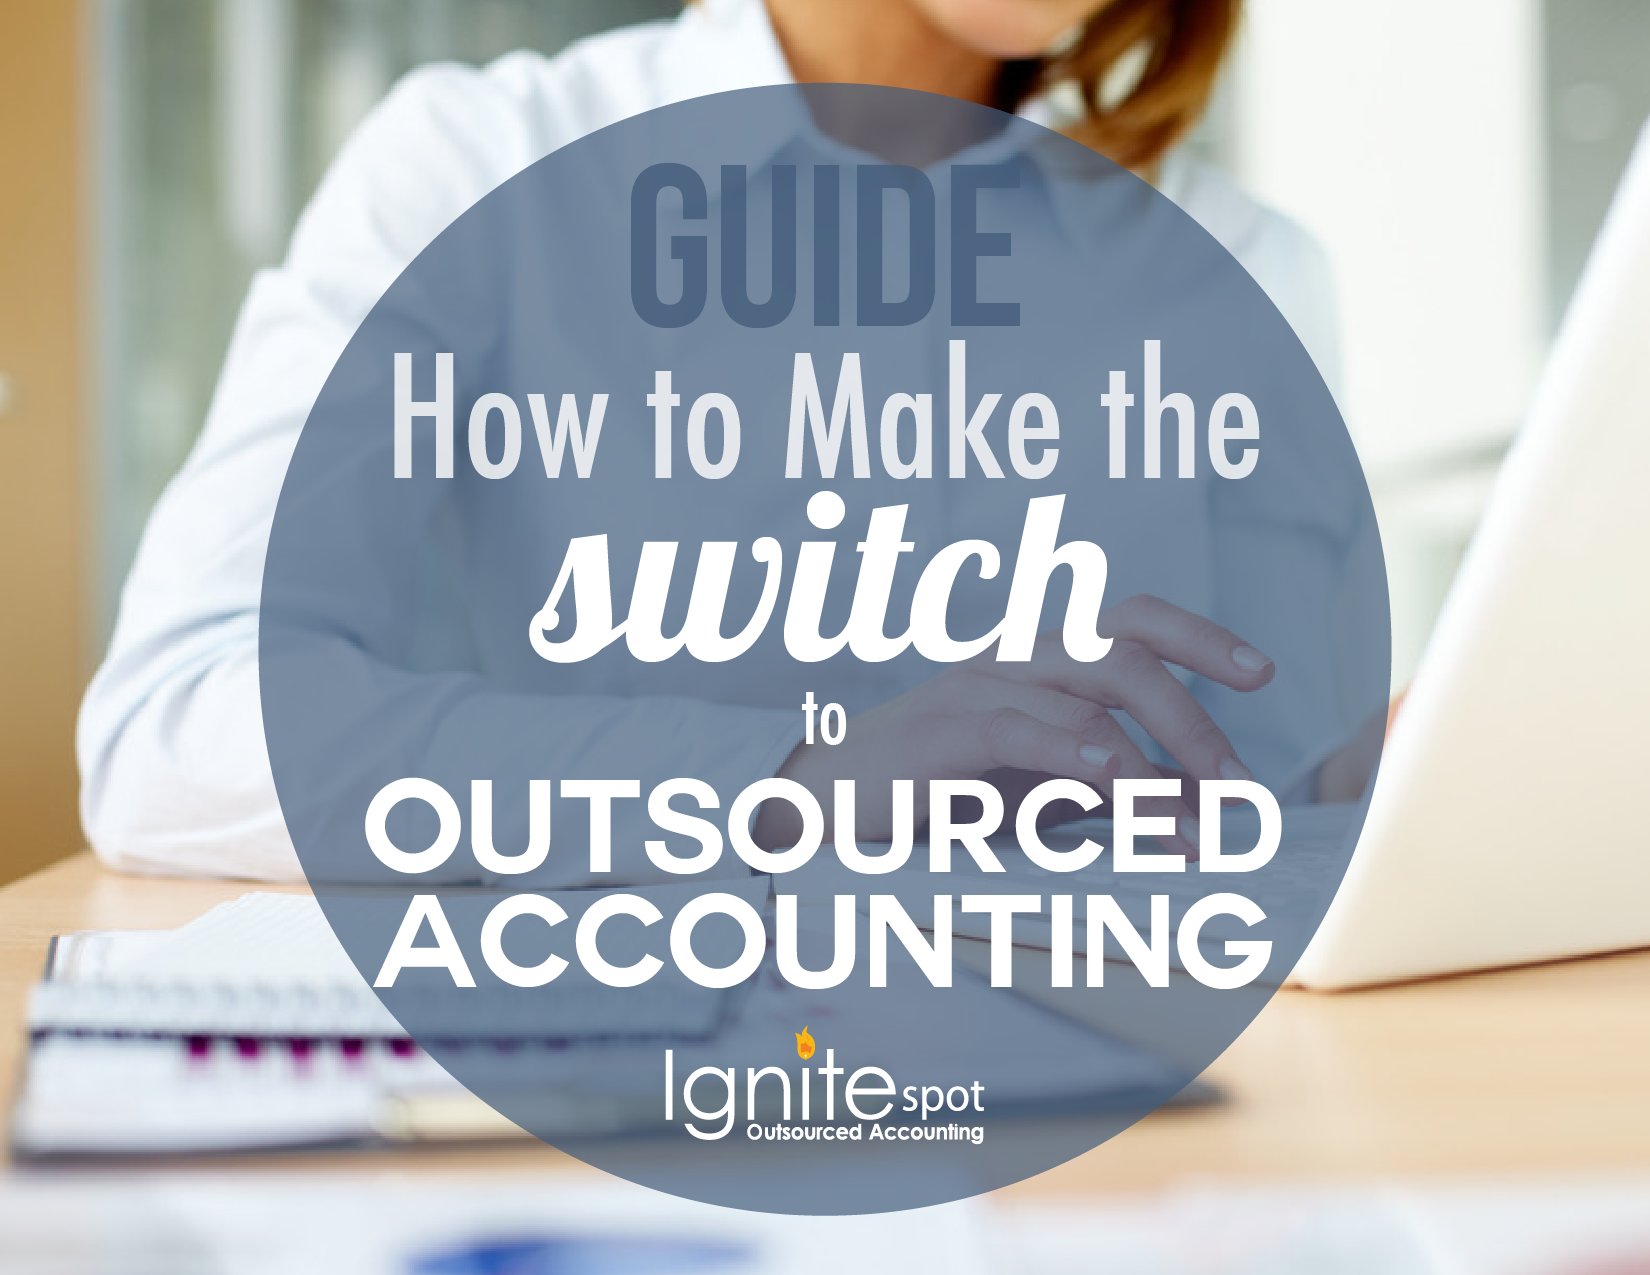 Switch_to_Outsourced_Accounting-01